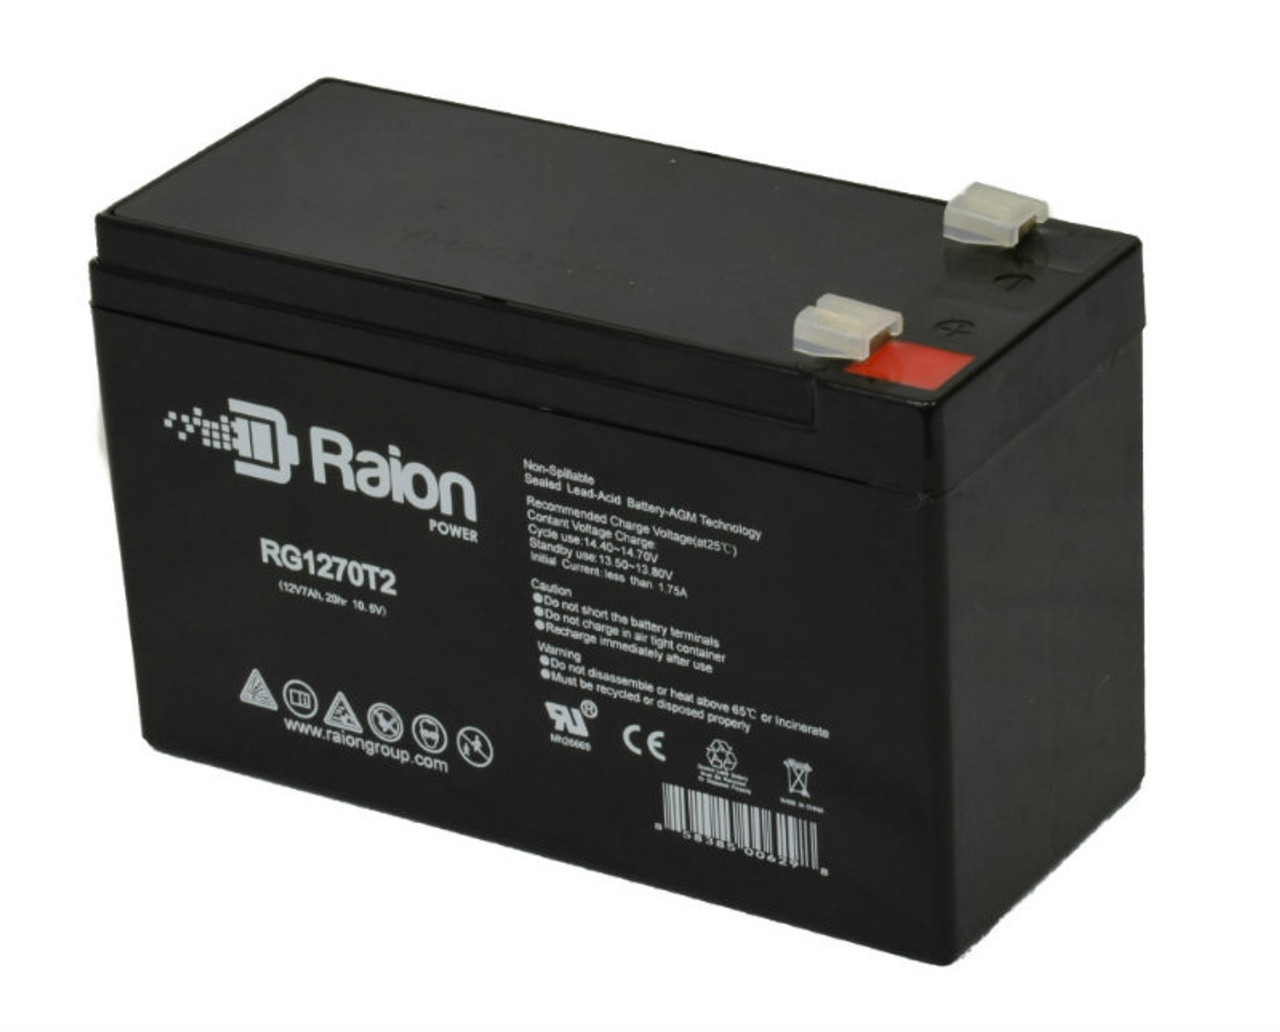 Raion Power RG1270T1 Replacement Battery for Jasco Battery RB1270-F1